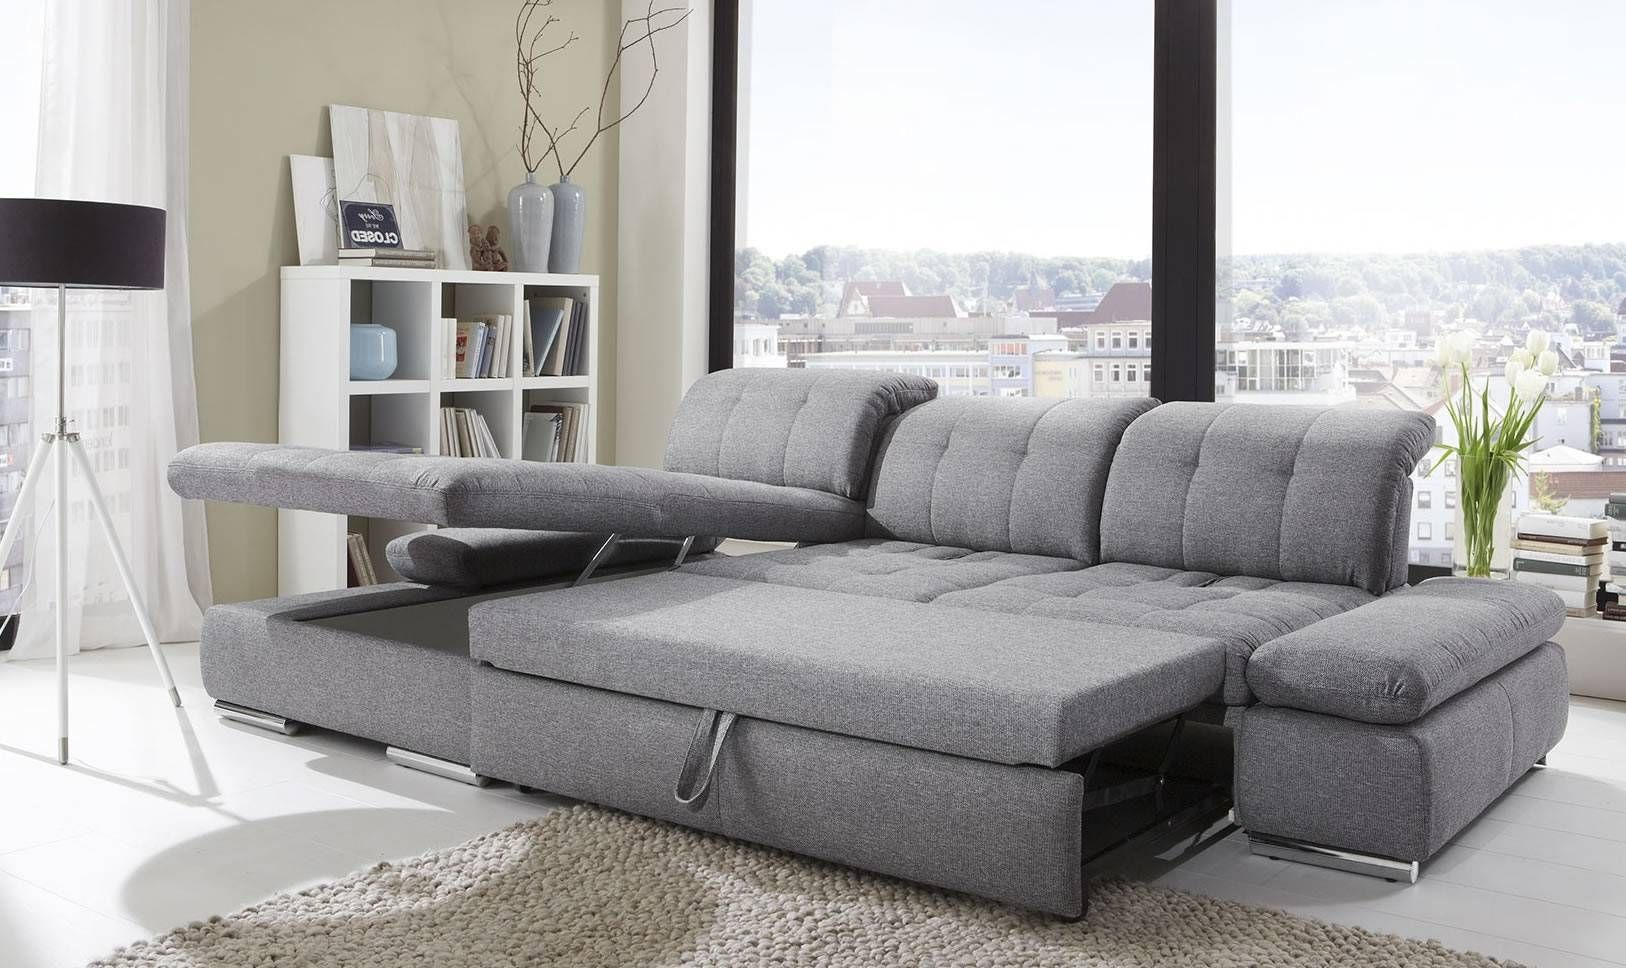 Queen sofa beds in 2019 market for comfortable night ...